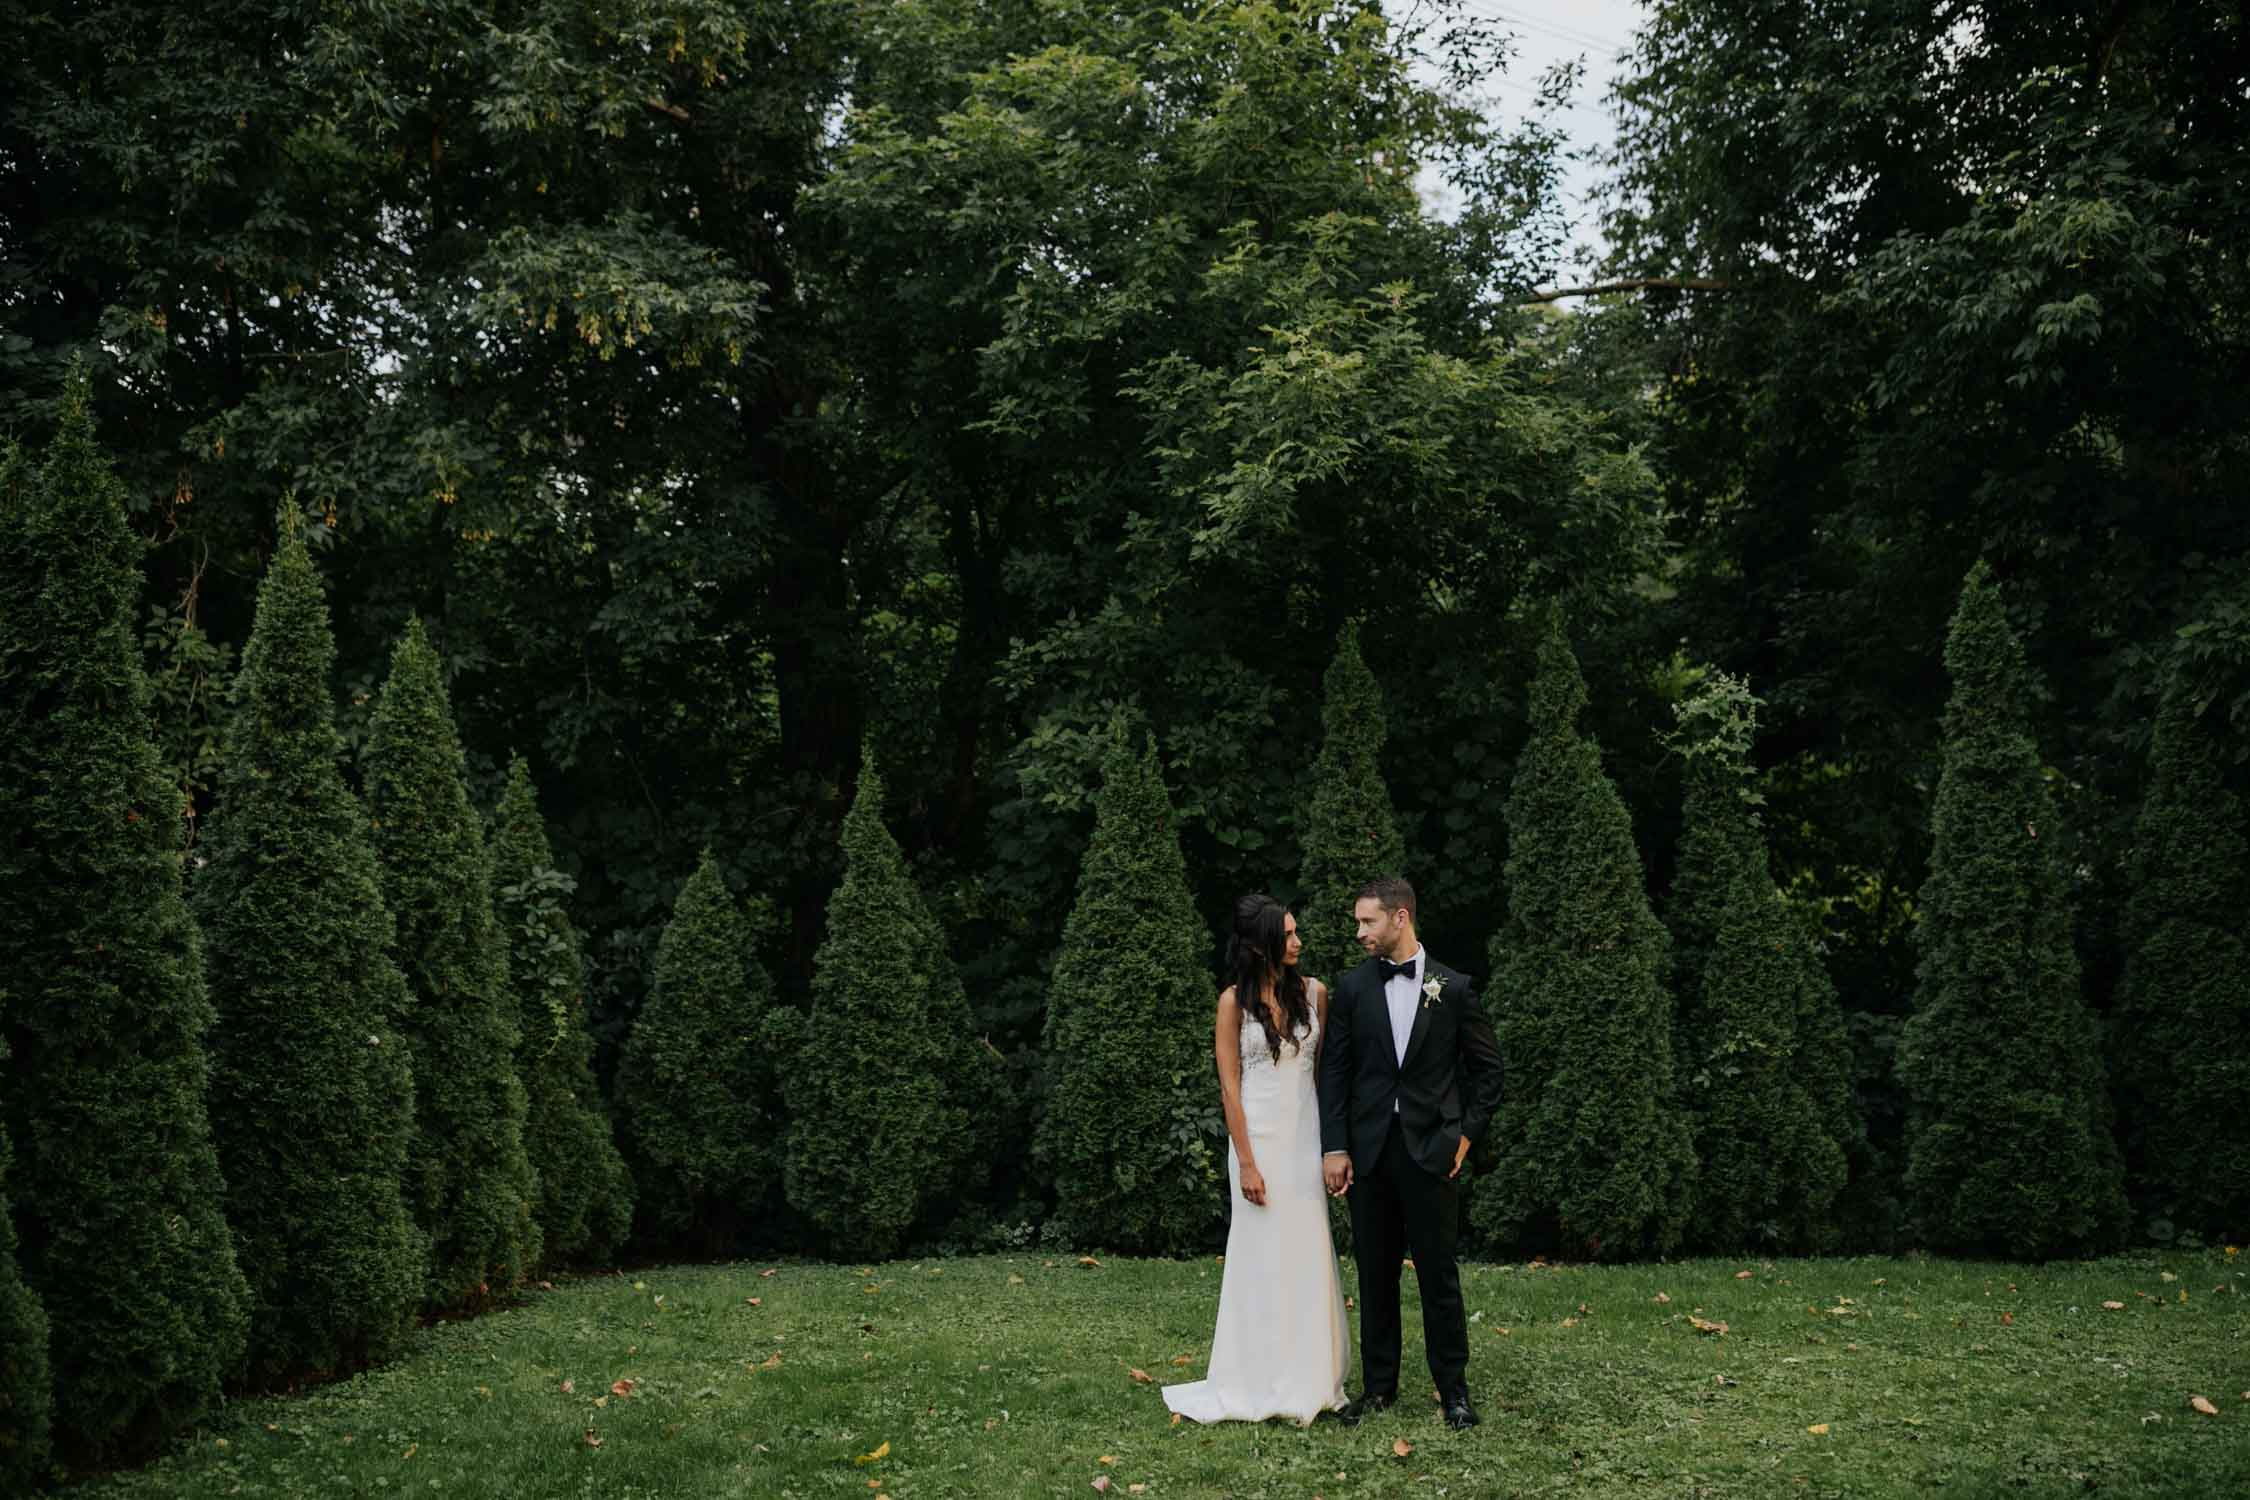 Documentary style Vancouver wedding photographer at Madsen's Greenhouse wedding venue in Newmarket close to Toronto